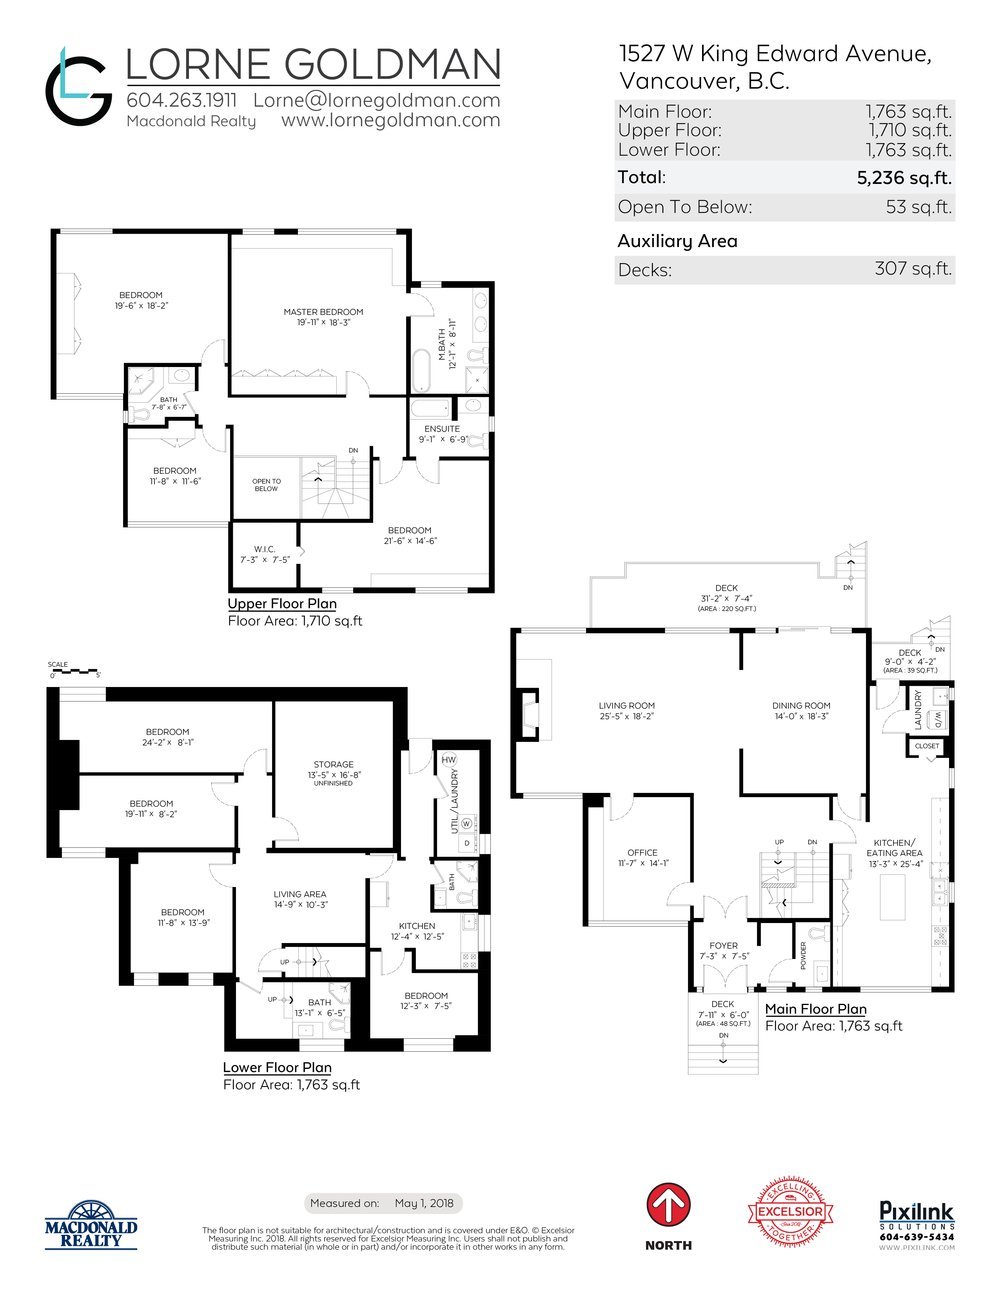 Floor Plan for a 8 Bedroom House in Vancouver